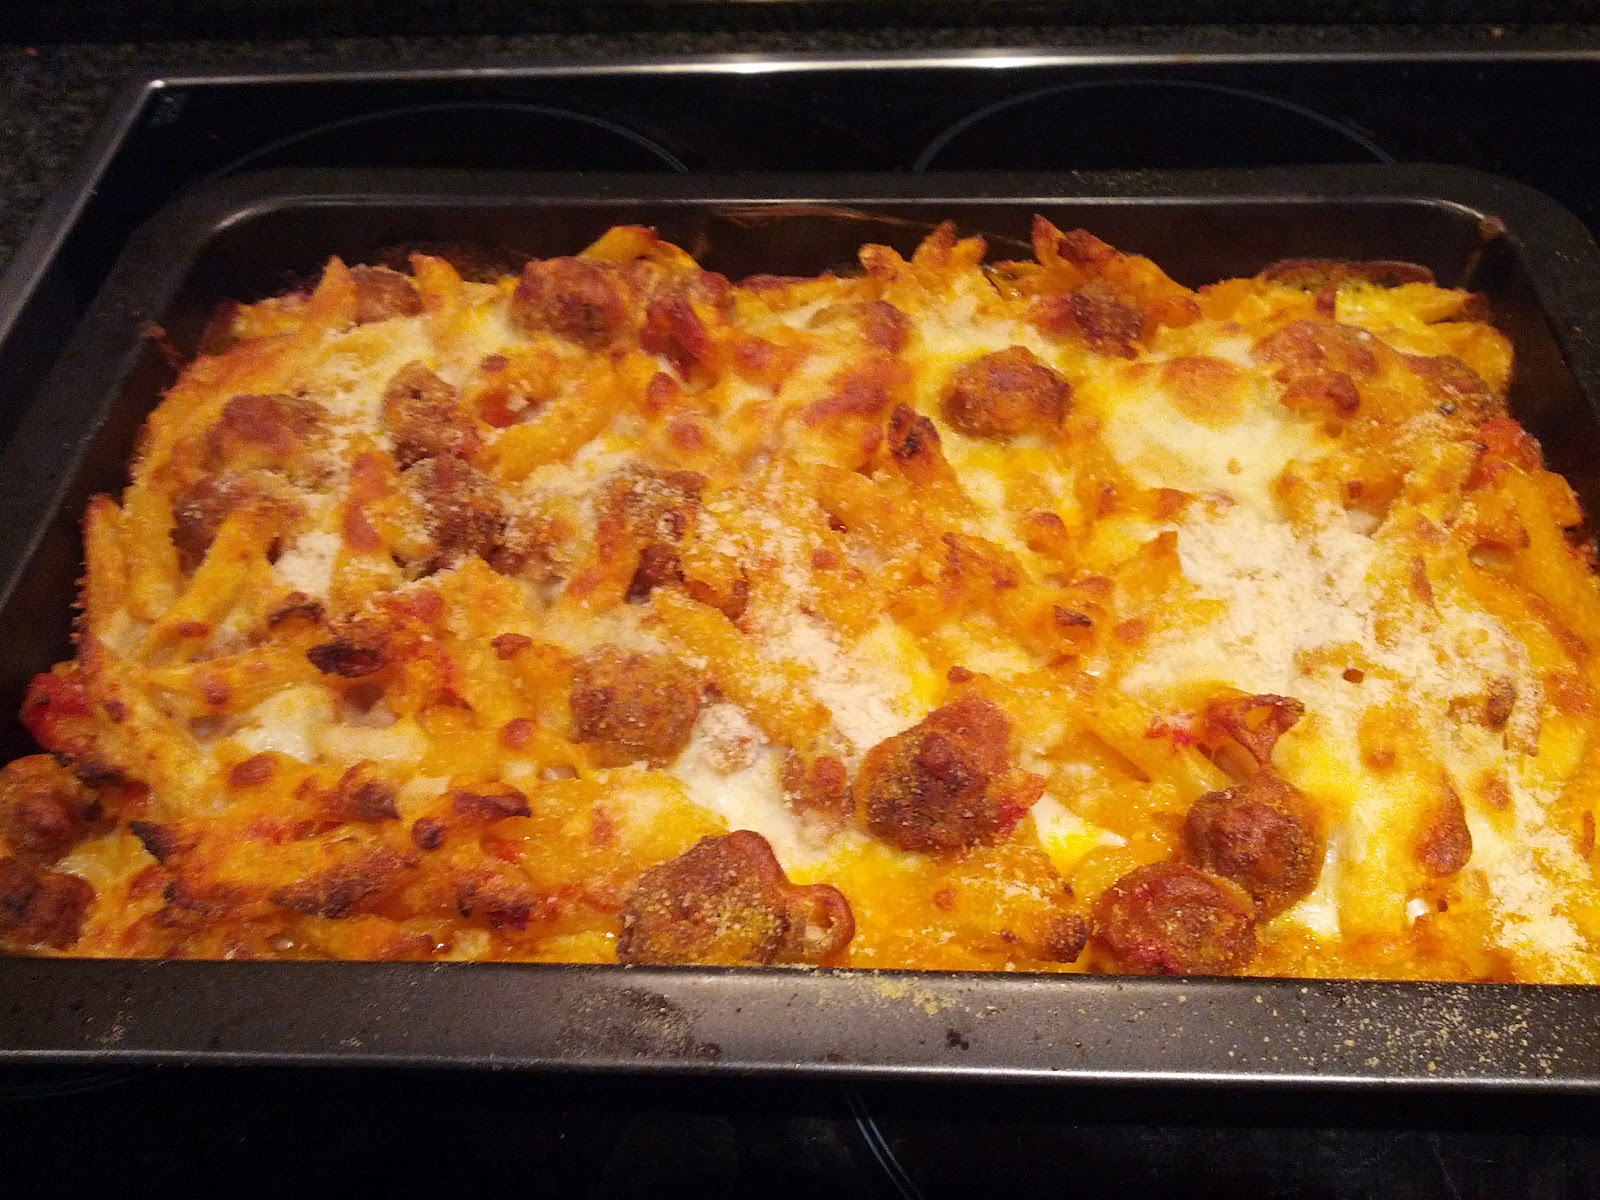 Simple Italian recipes: Baked meatball pasta (pasta al forno)